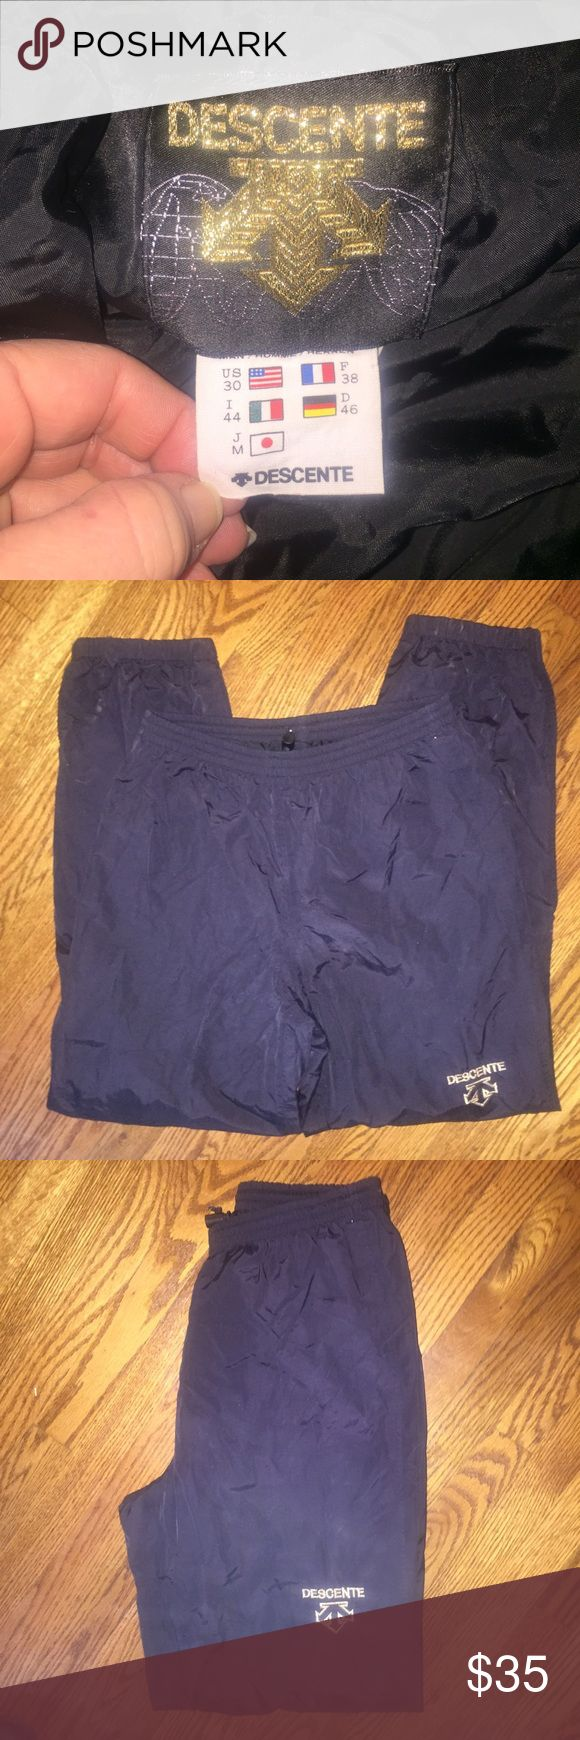 Mens or Womens Descente ski pants she'l...Size 30 Men's or Women's Descente ski/snowboarding shell pants...Size 30 with no rips or stains from a smoke free home! Descente Pants